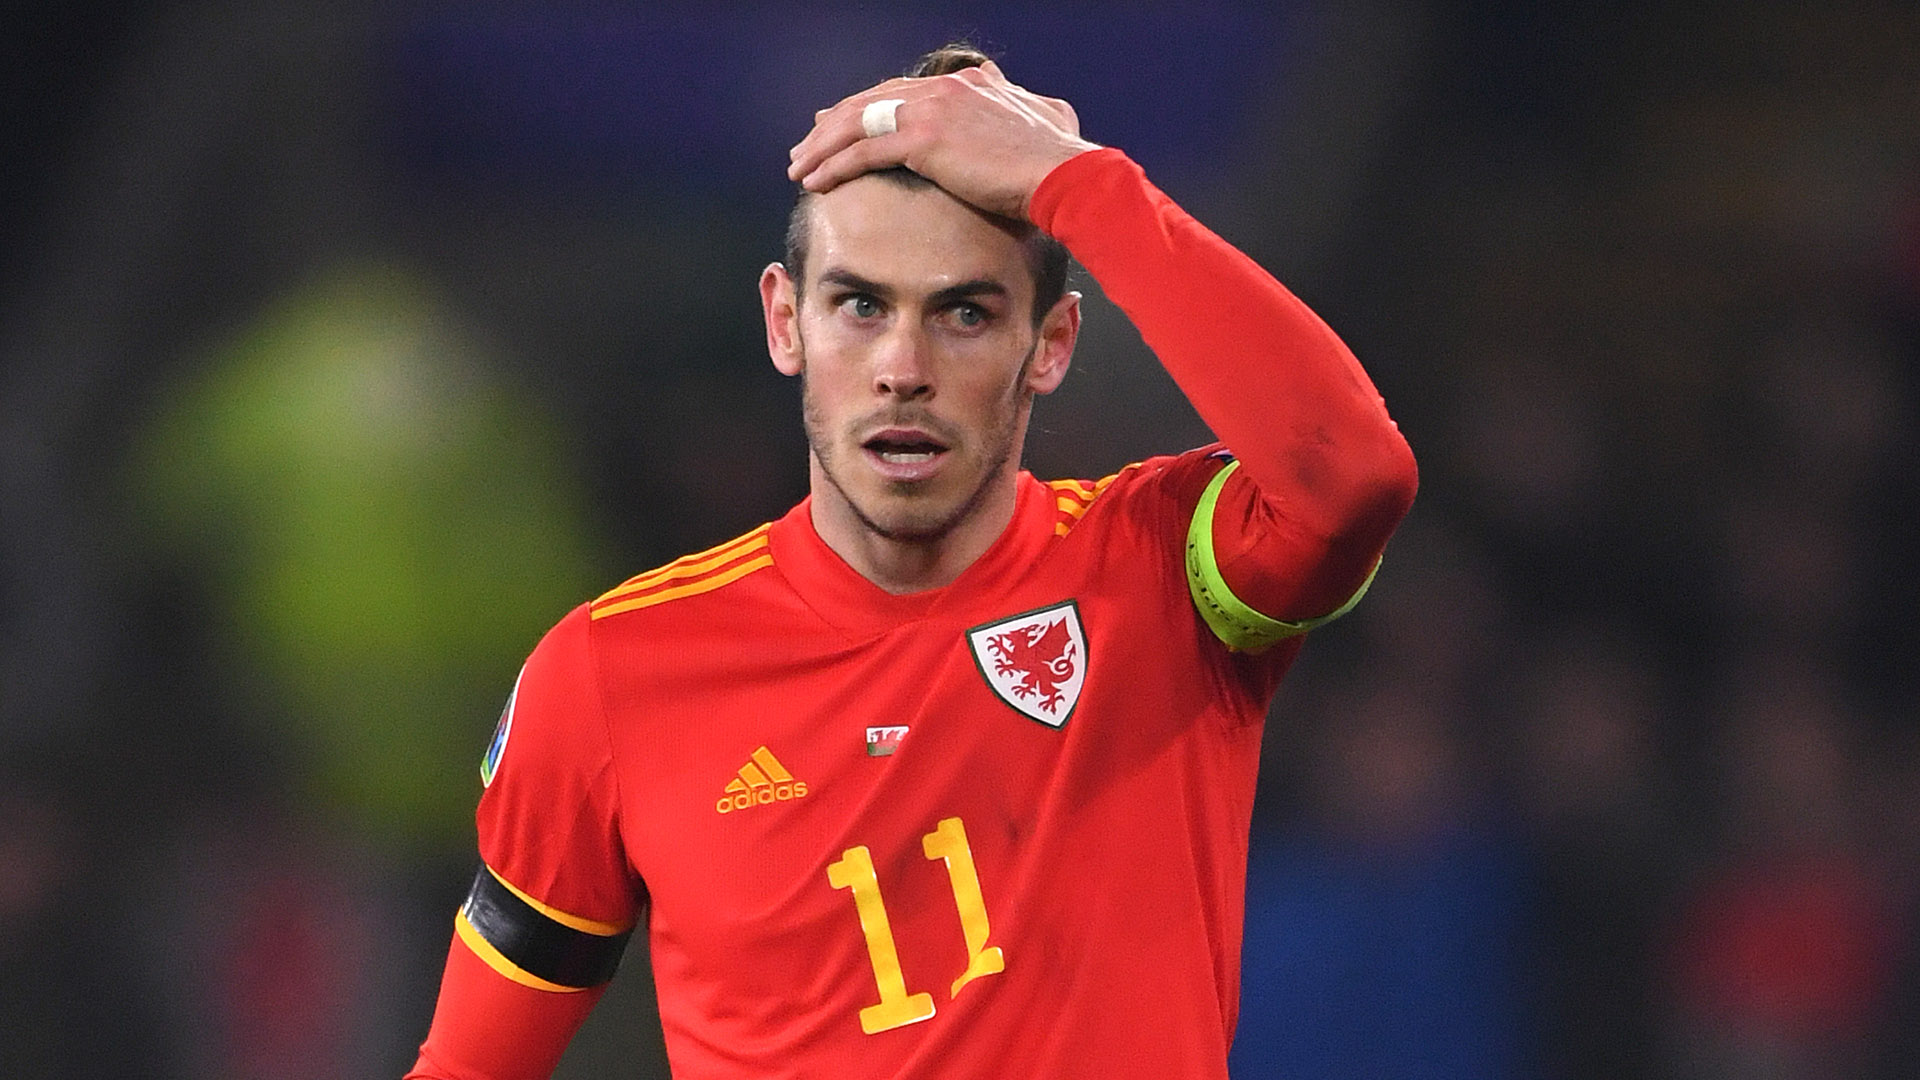 Giggs satisfied with Bale situation as forward is included in Wales squad despite Real Madrid omission